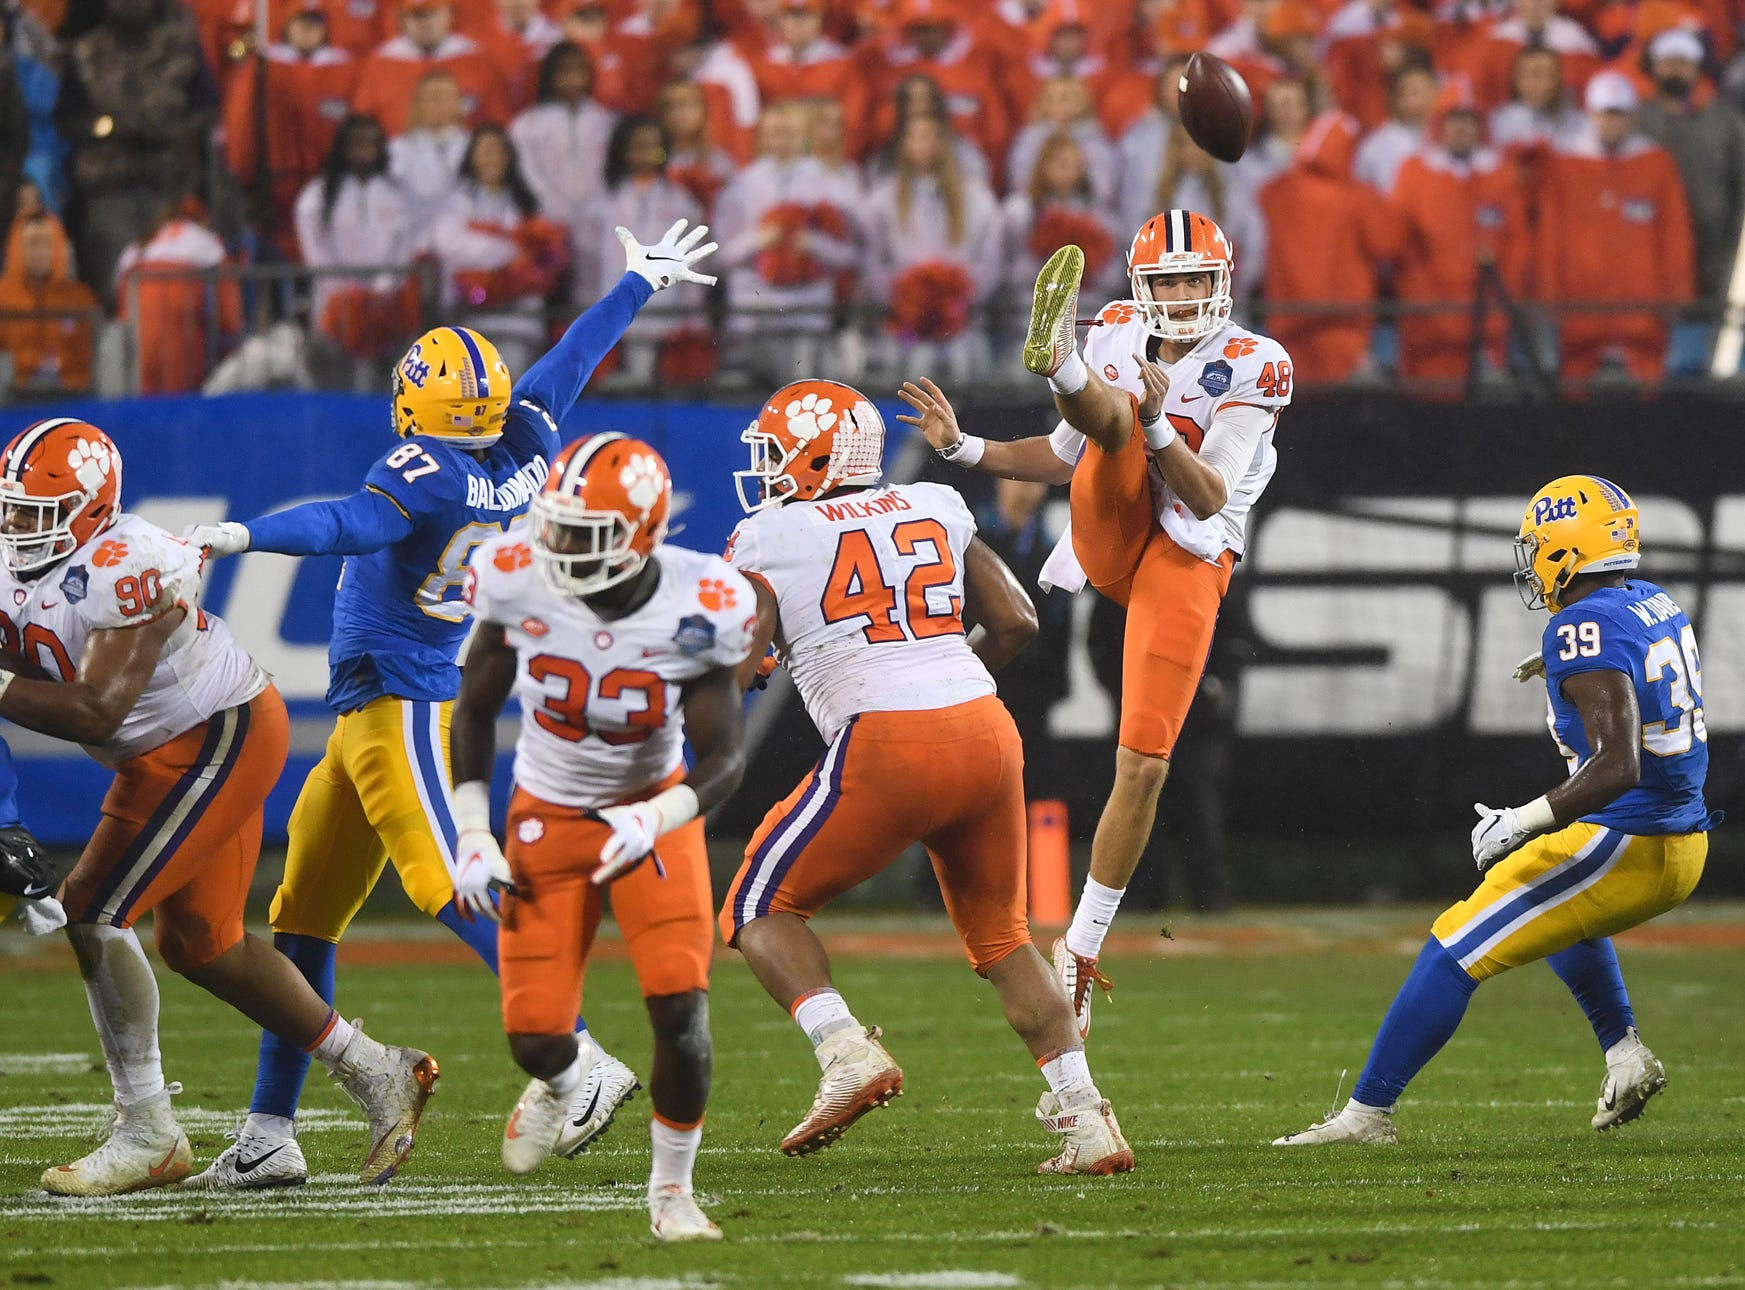 Clemson punter Will Spiers (48) punts against Pittsburgh during the 1st quarter of the Dr. Pepper ACC Championship at Bank of America Stadium in Charlotte, N.C. Saturday, December 1, 2018.